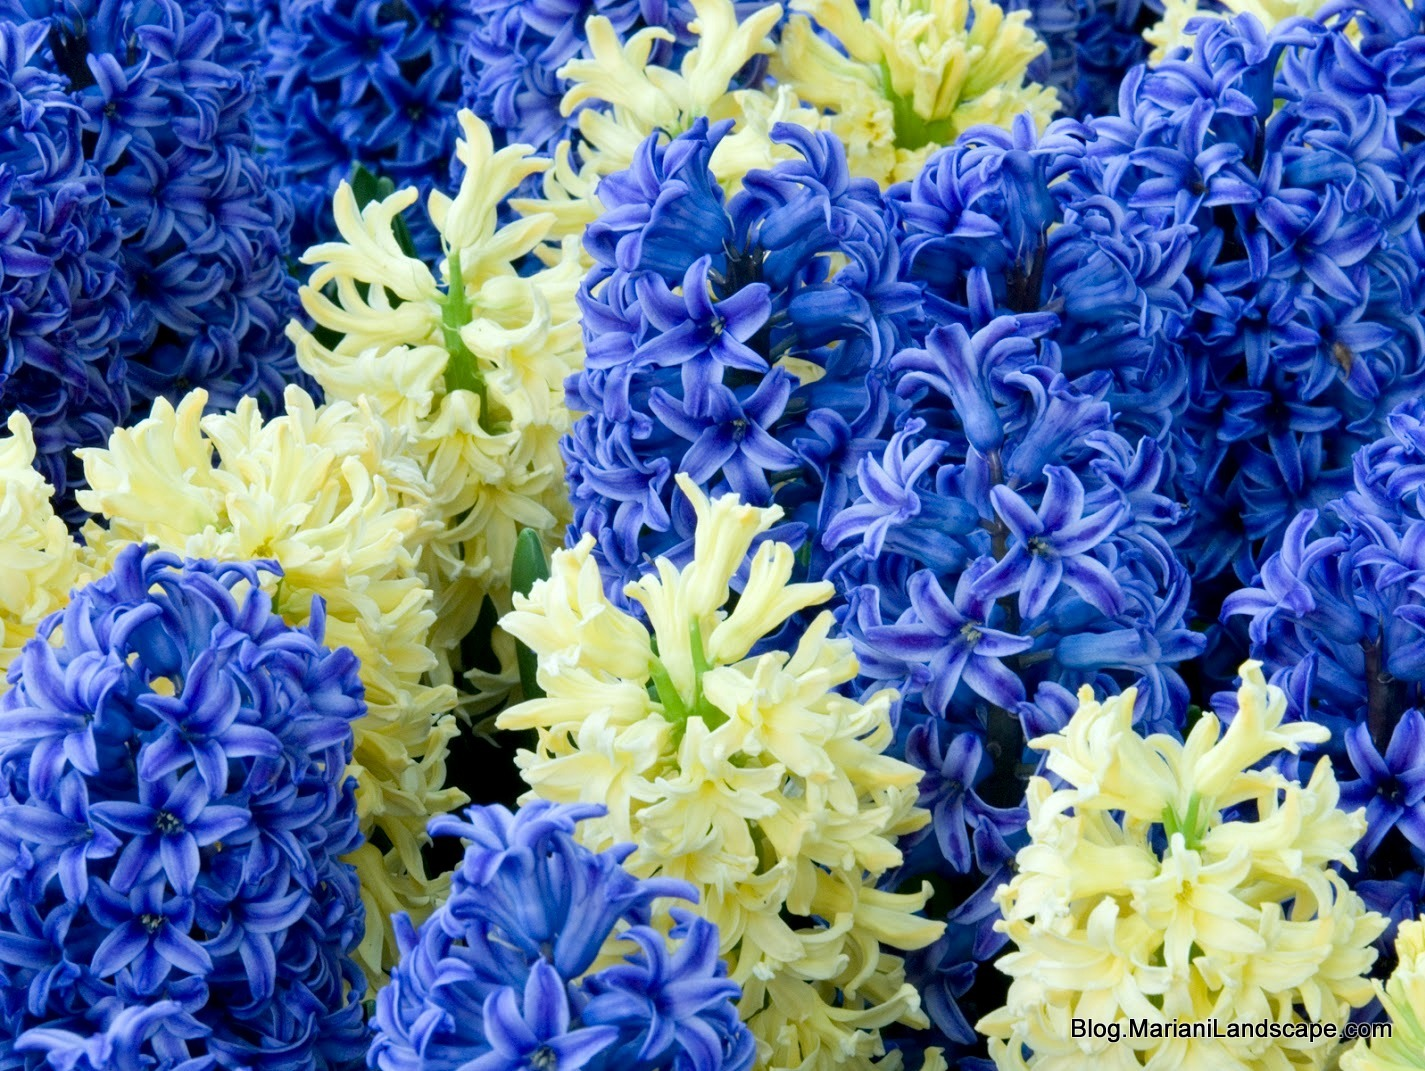 Yellow and blue common hyacinth ...